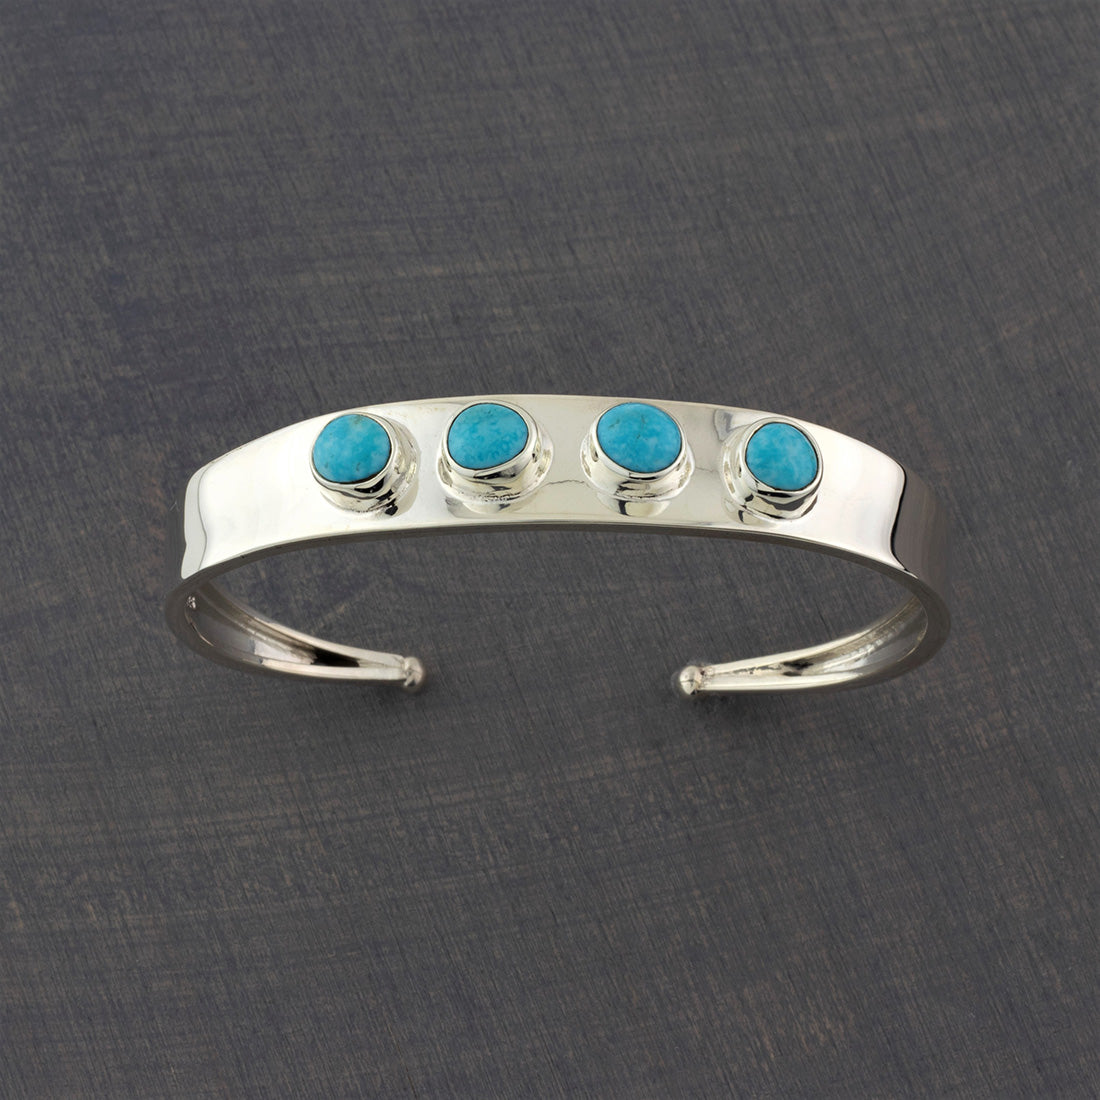 multi stone turquoise and silver cuff bracelet